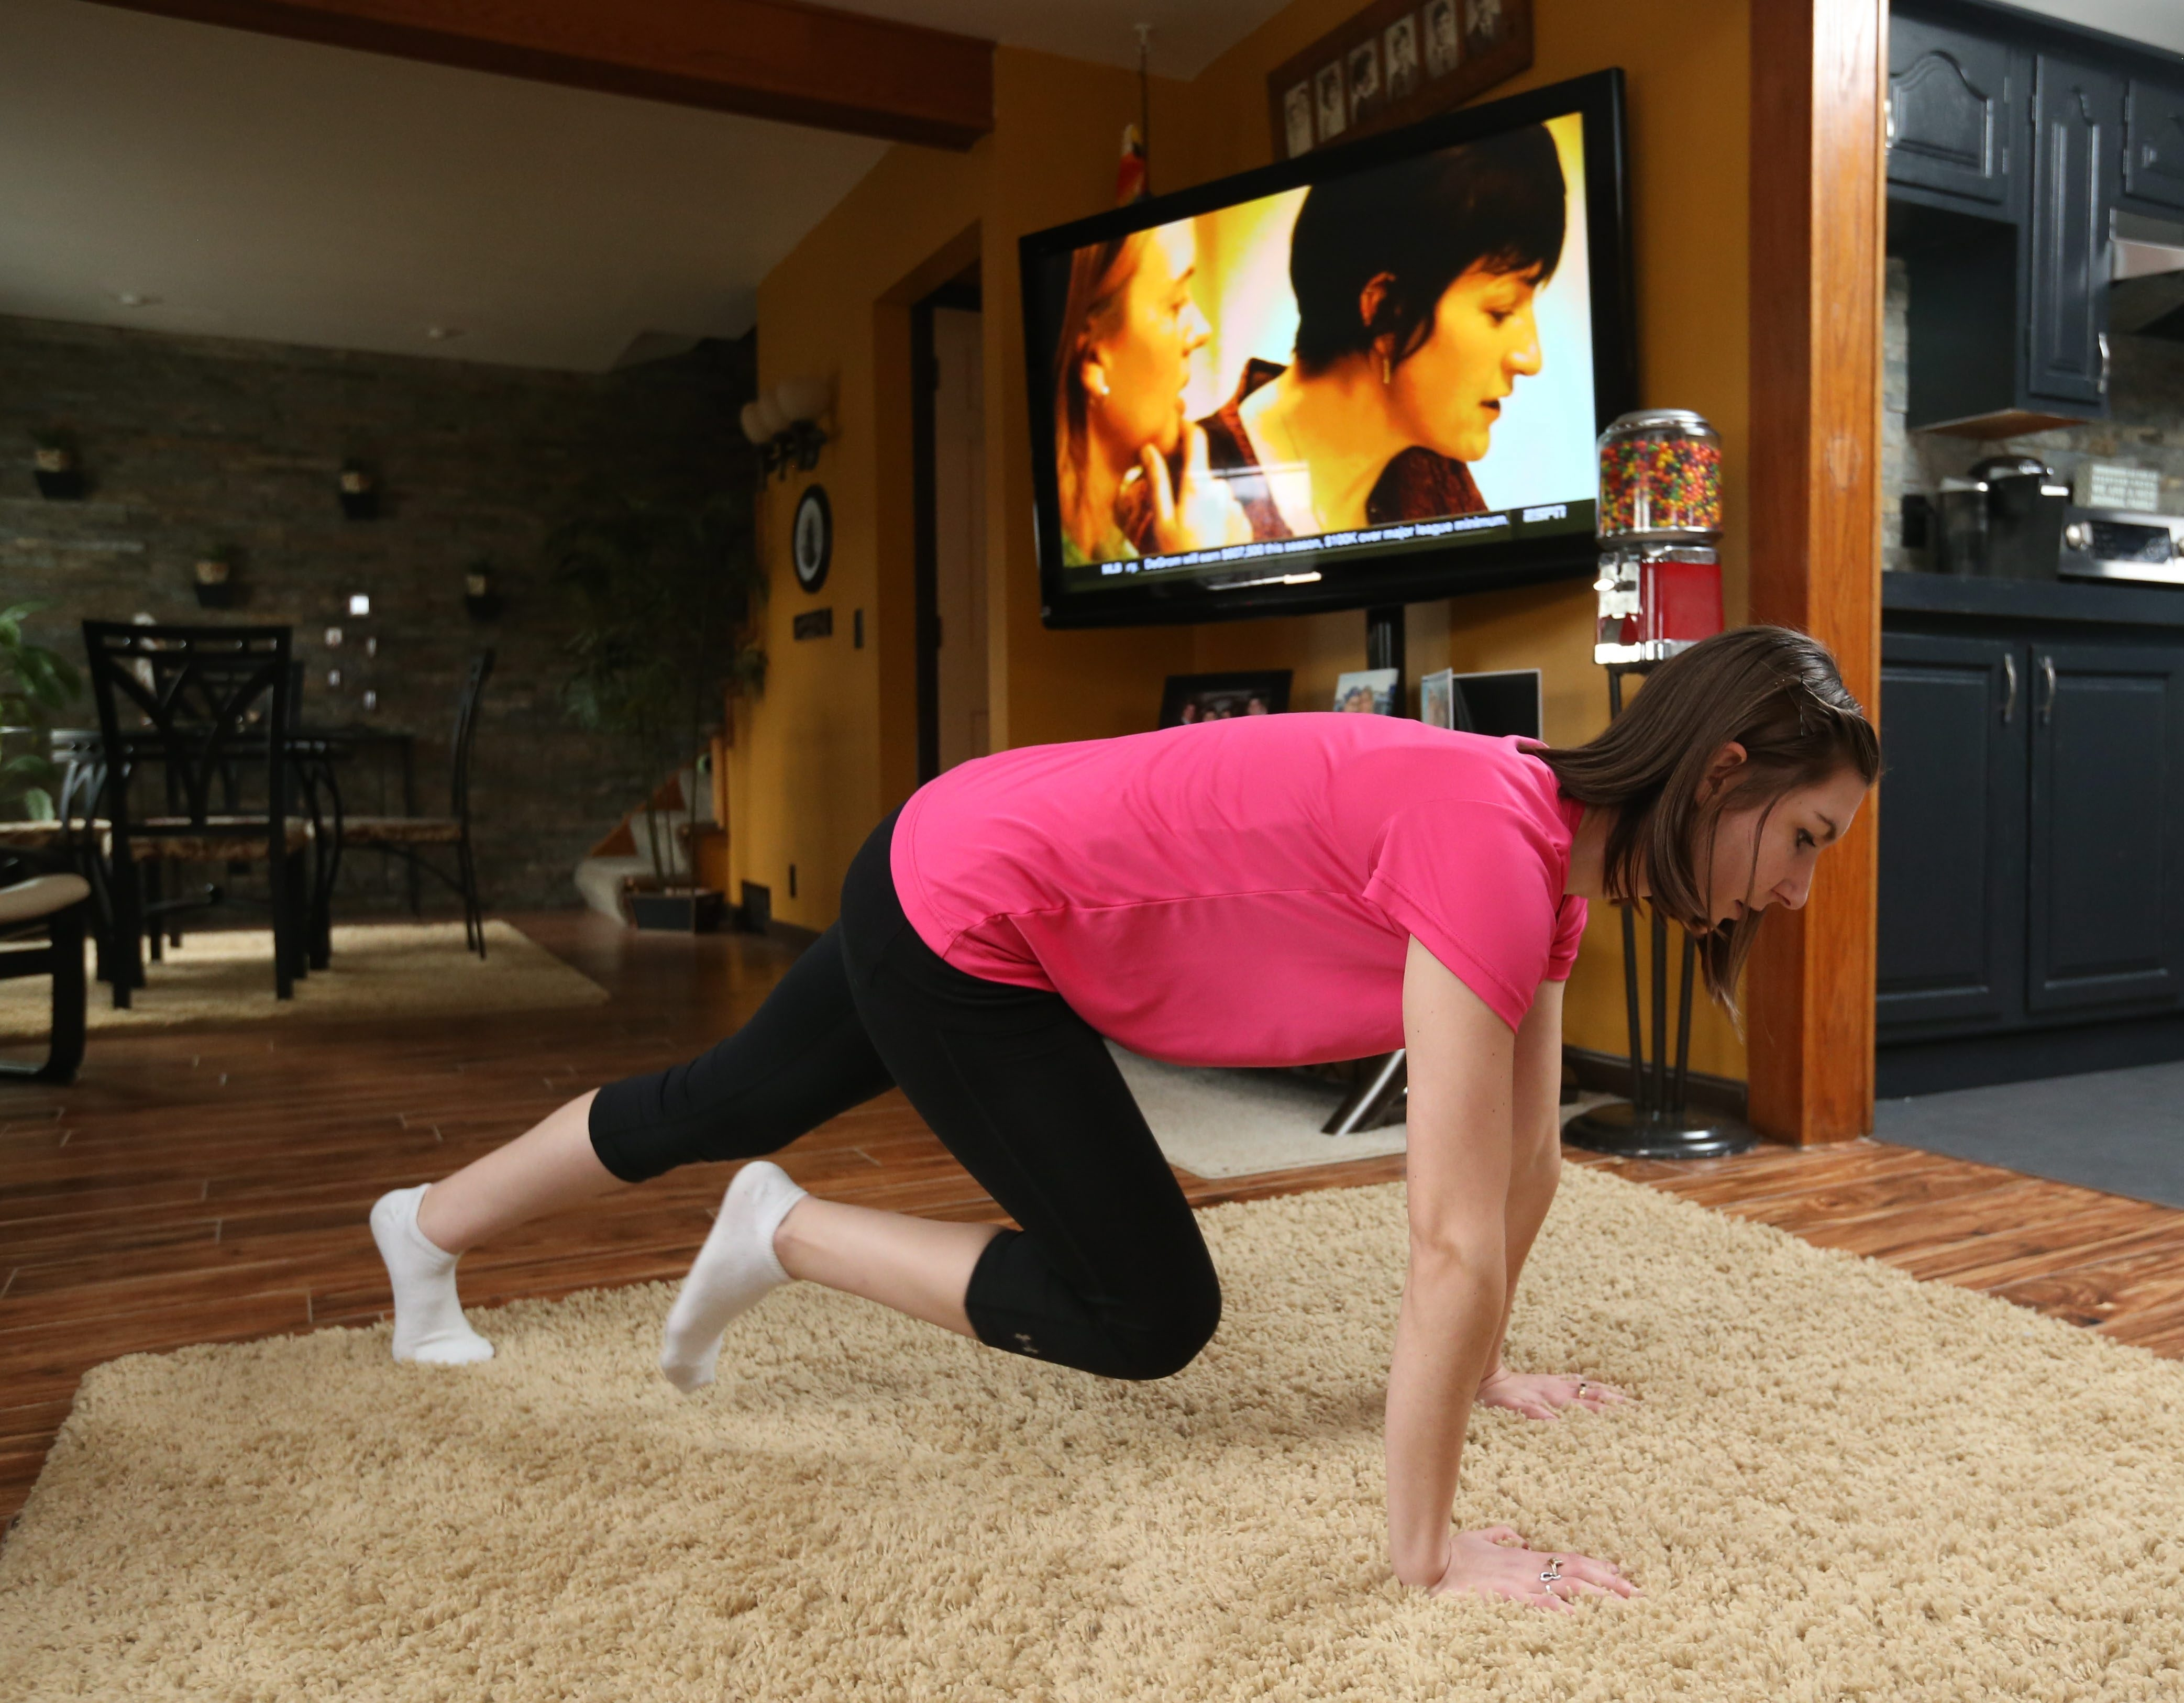 There are exercises that can be done during commercial breaks while watching TV to make it a healthier pastime.  Certified Personal Trainer Jilyana Baumgarten demonstrates mountain climbers, Friday, March 4, 2016. This is a level two exercise. (Sharon Cantillon/Buffalo News)